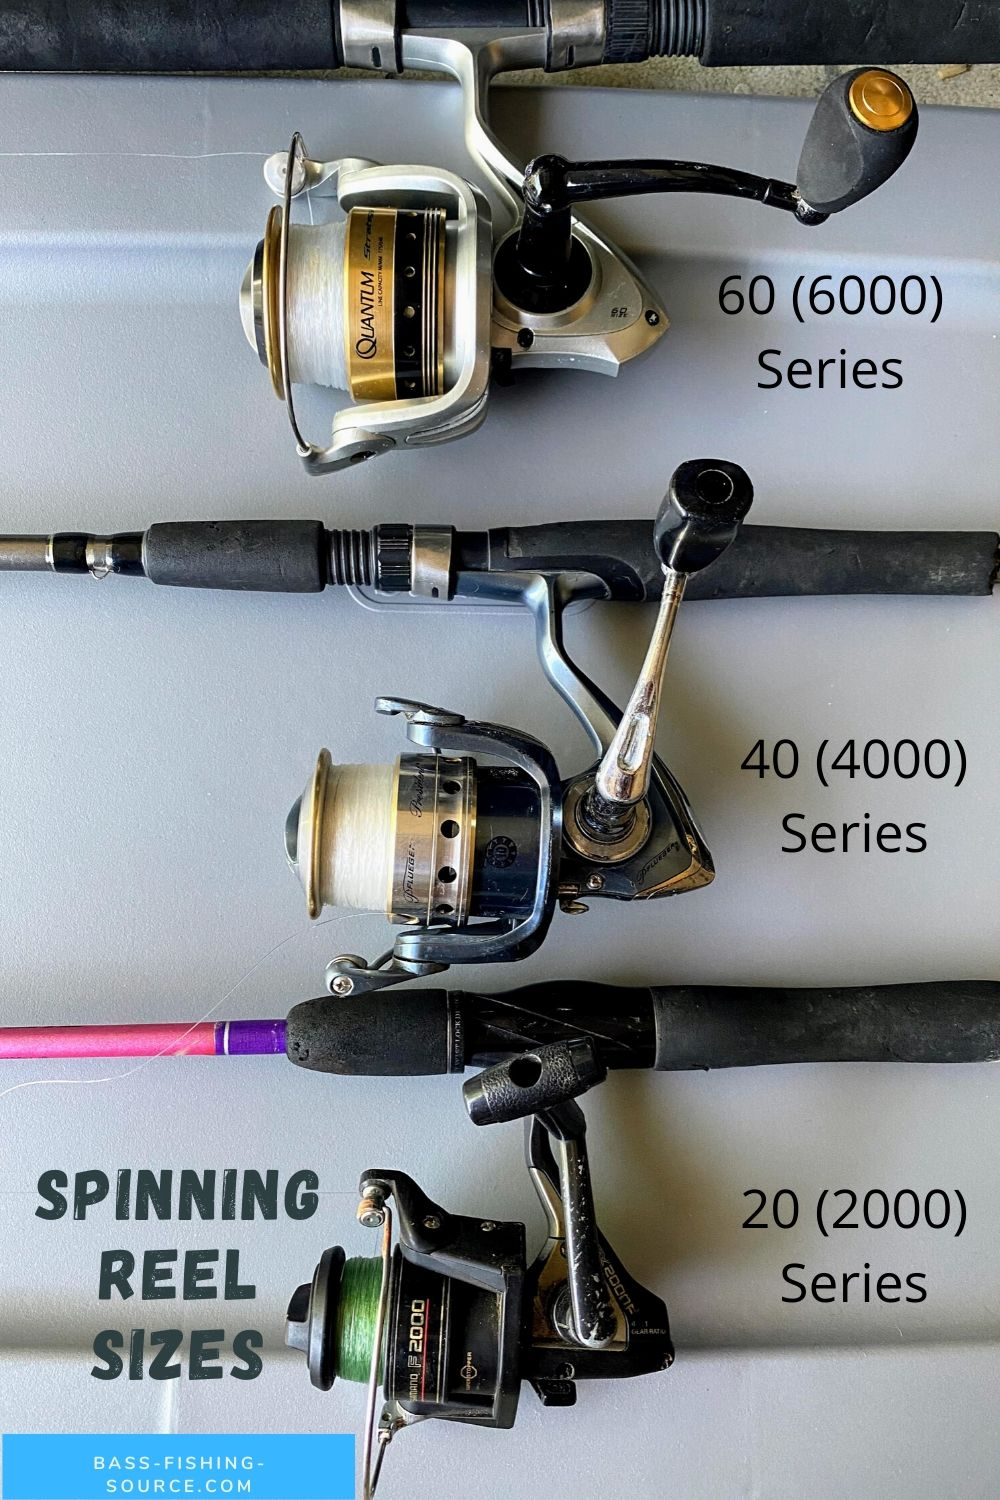 What different sizes of spinning reels look like.